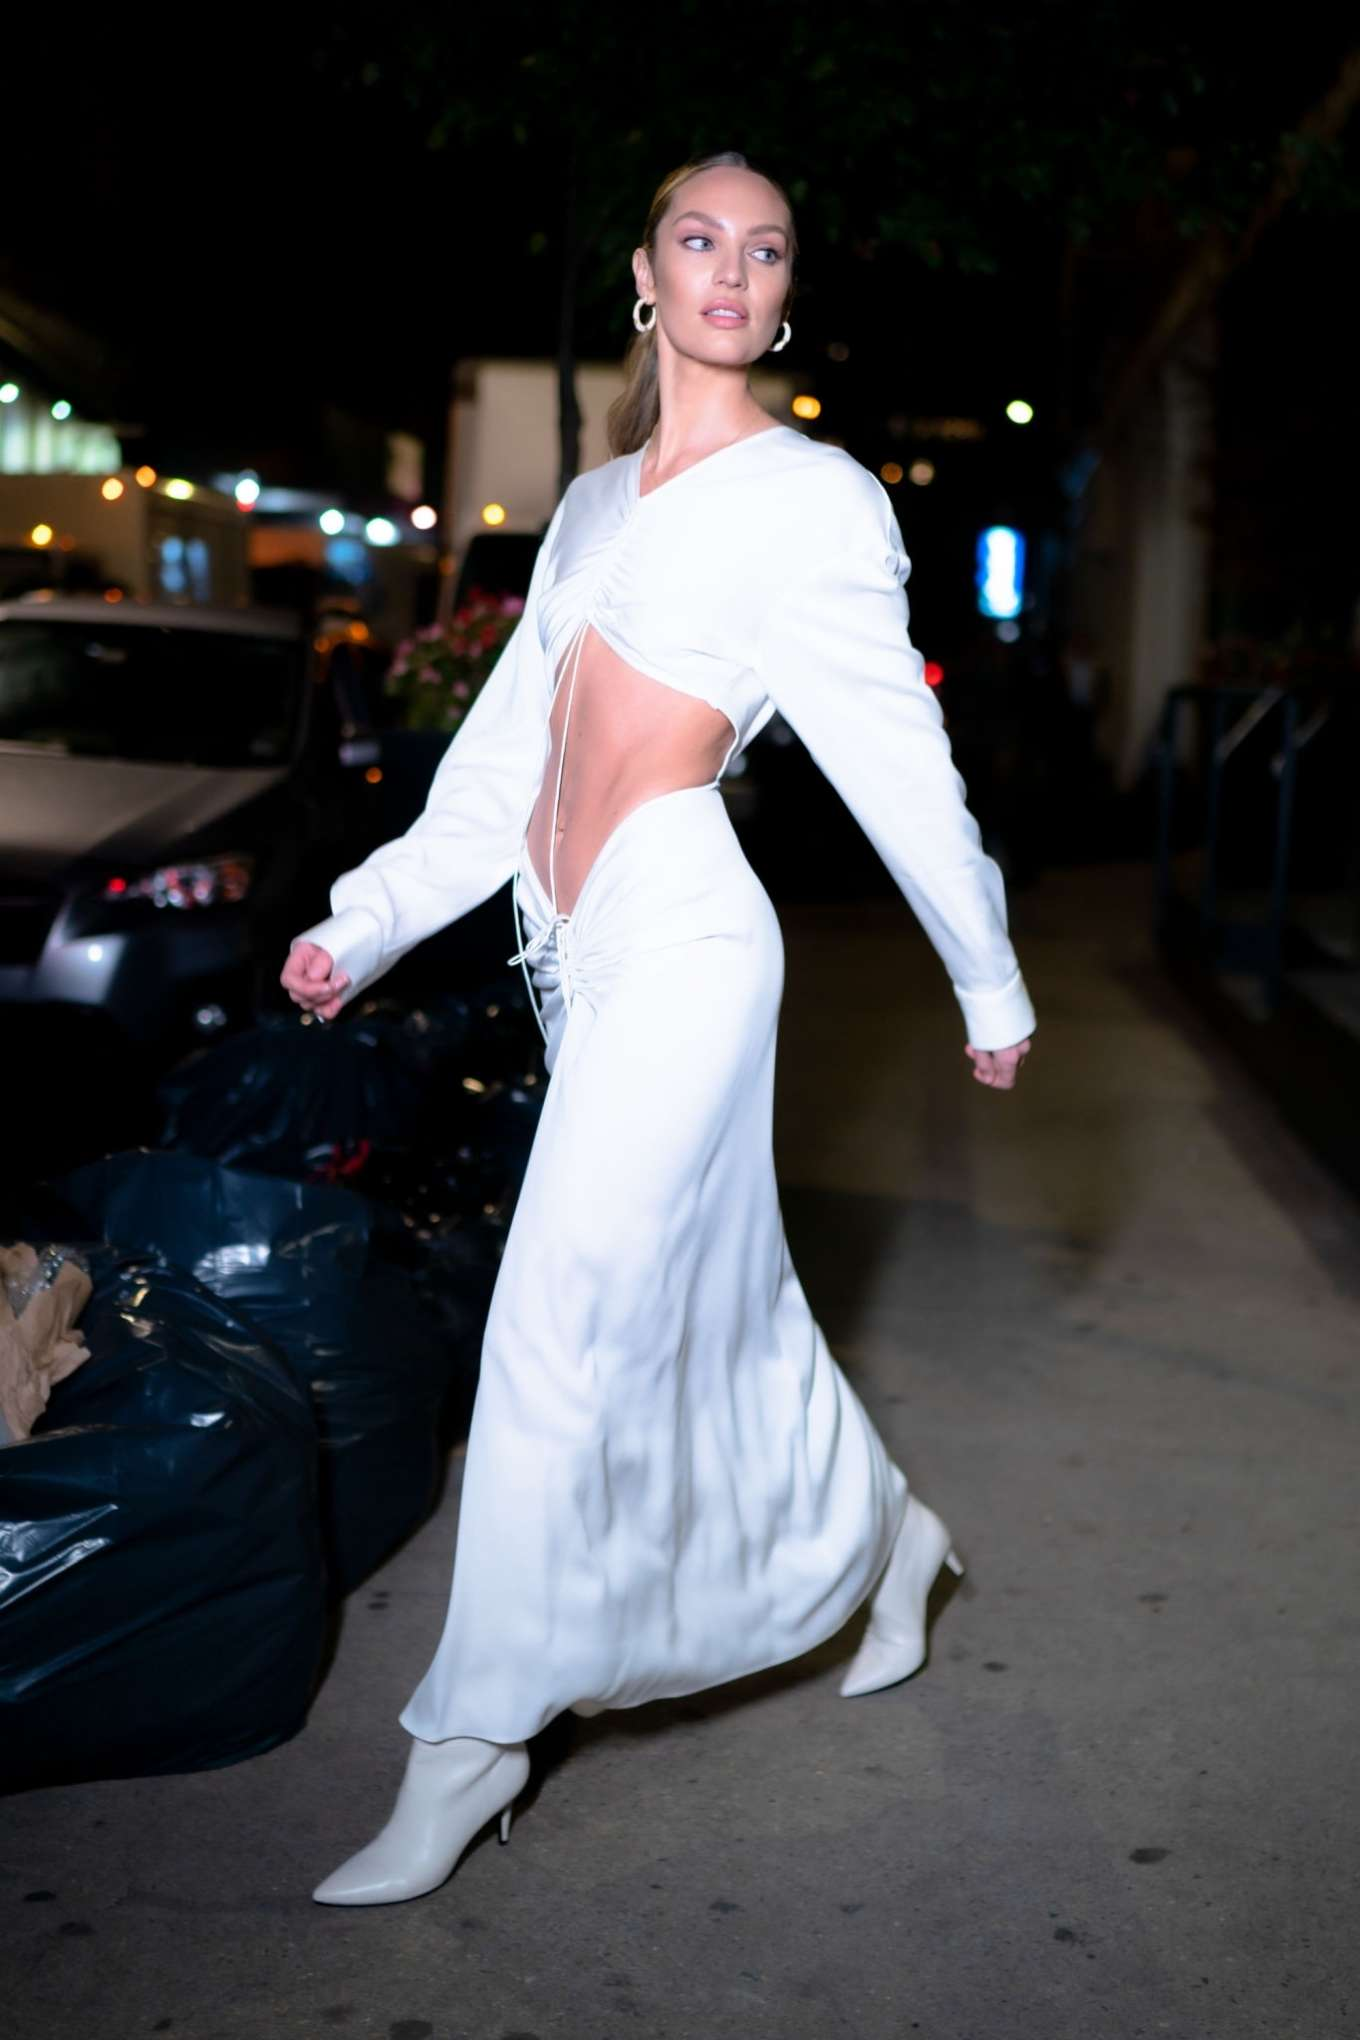 Candice Swanepoel 2019 : Candice Swanepoel in White Dress – Out in NYC-03